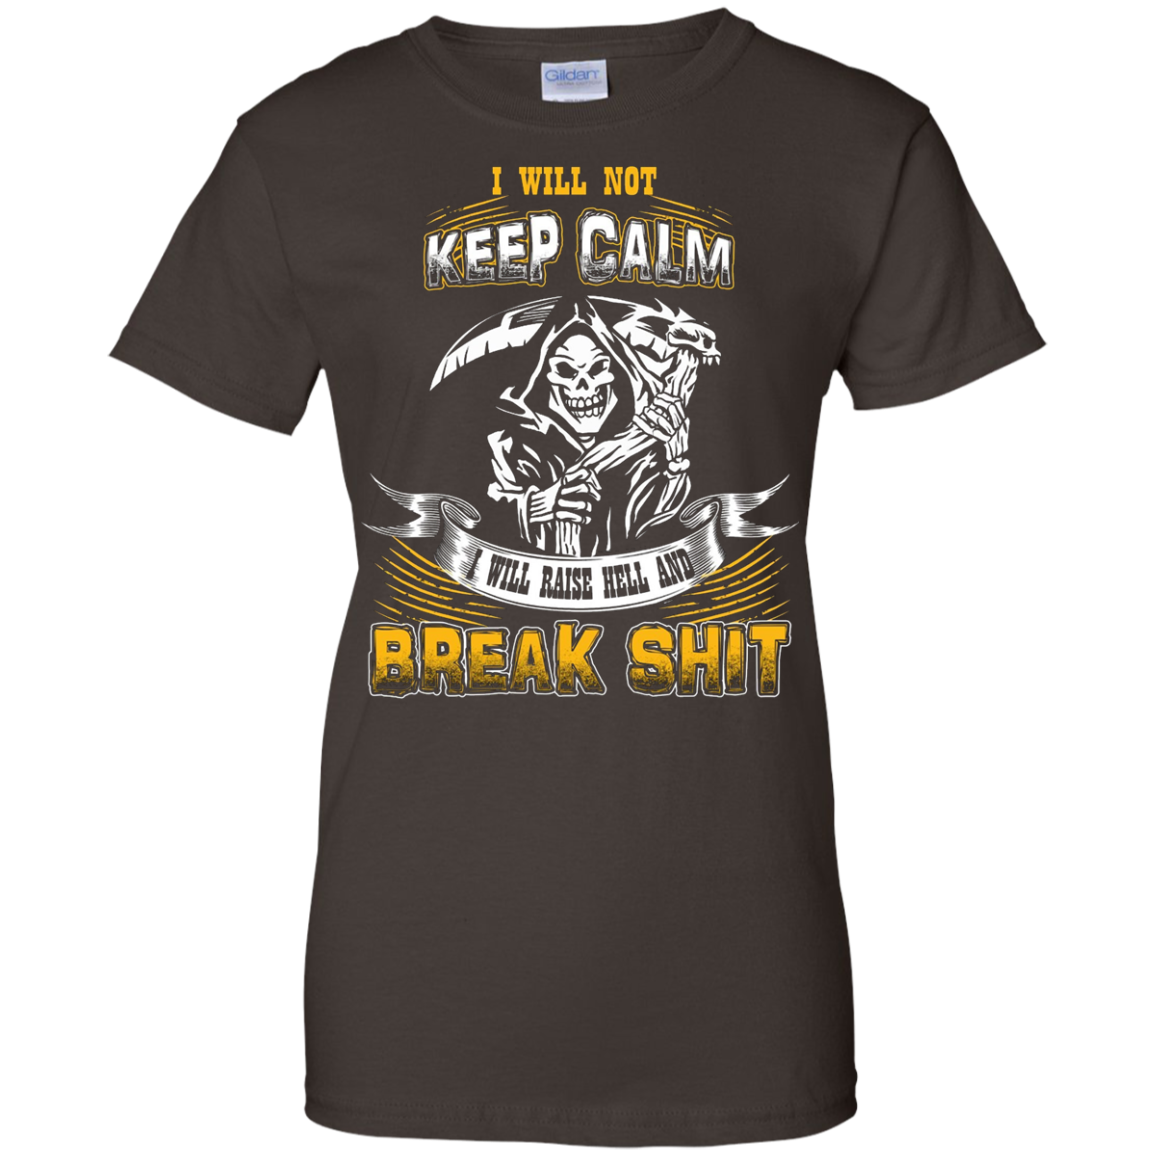 GrimReaperShop - I WILL NOT KEEP CALM. I WILL RAISE HELL ...